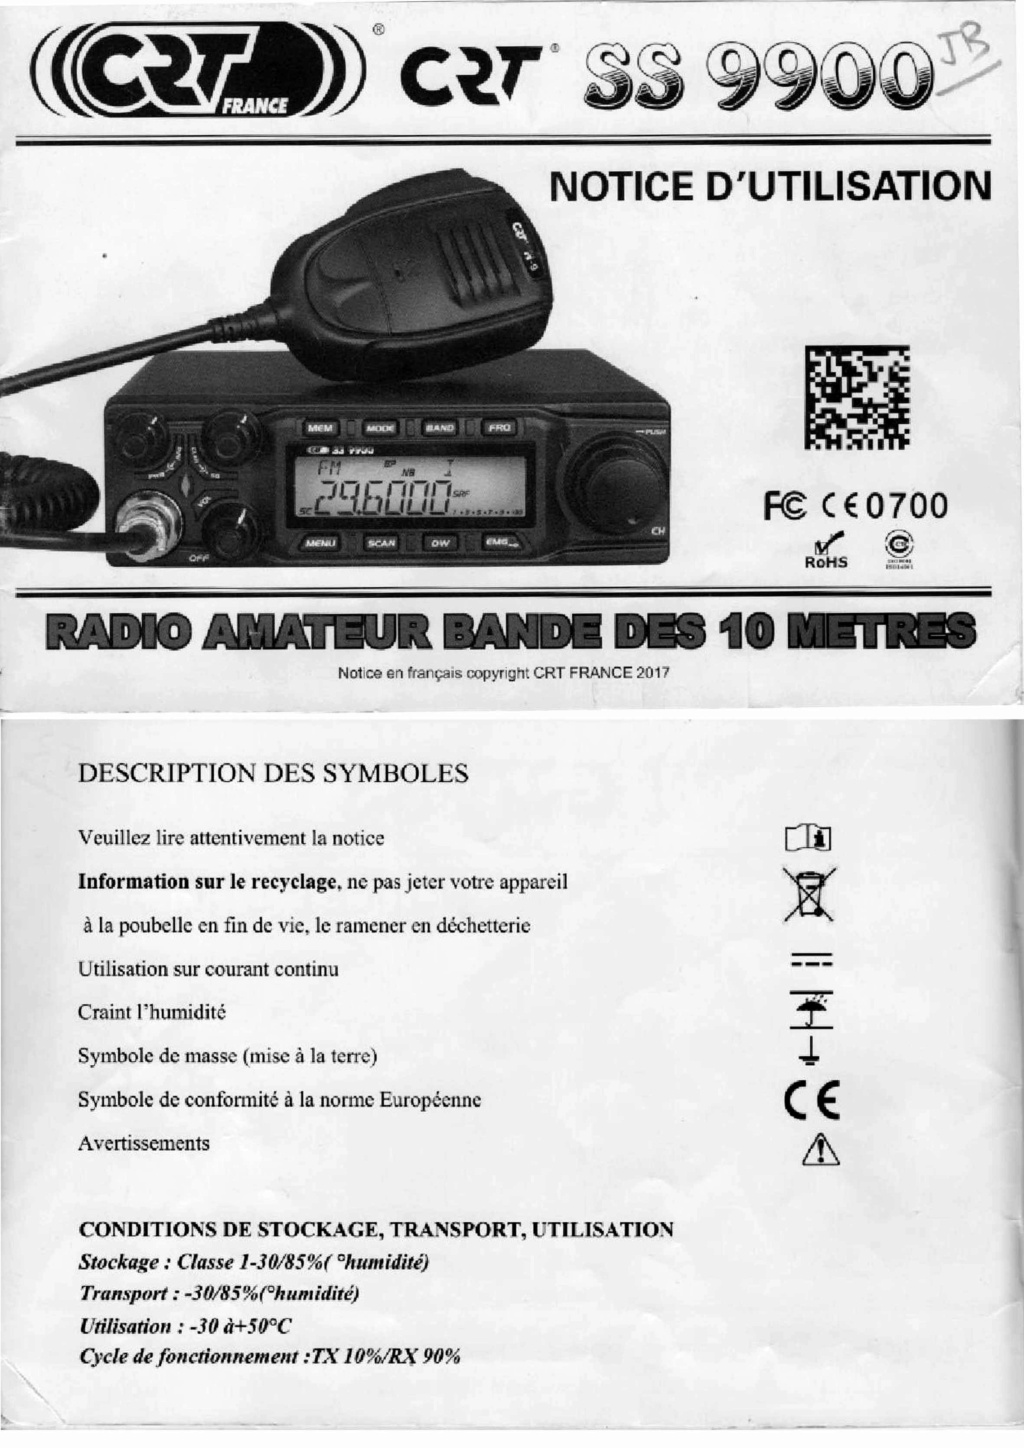 CRT SS 9900 v4 (Mobile) - Page 16 Feuill27